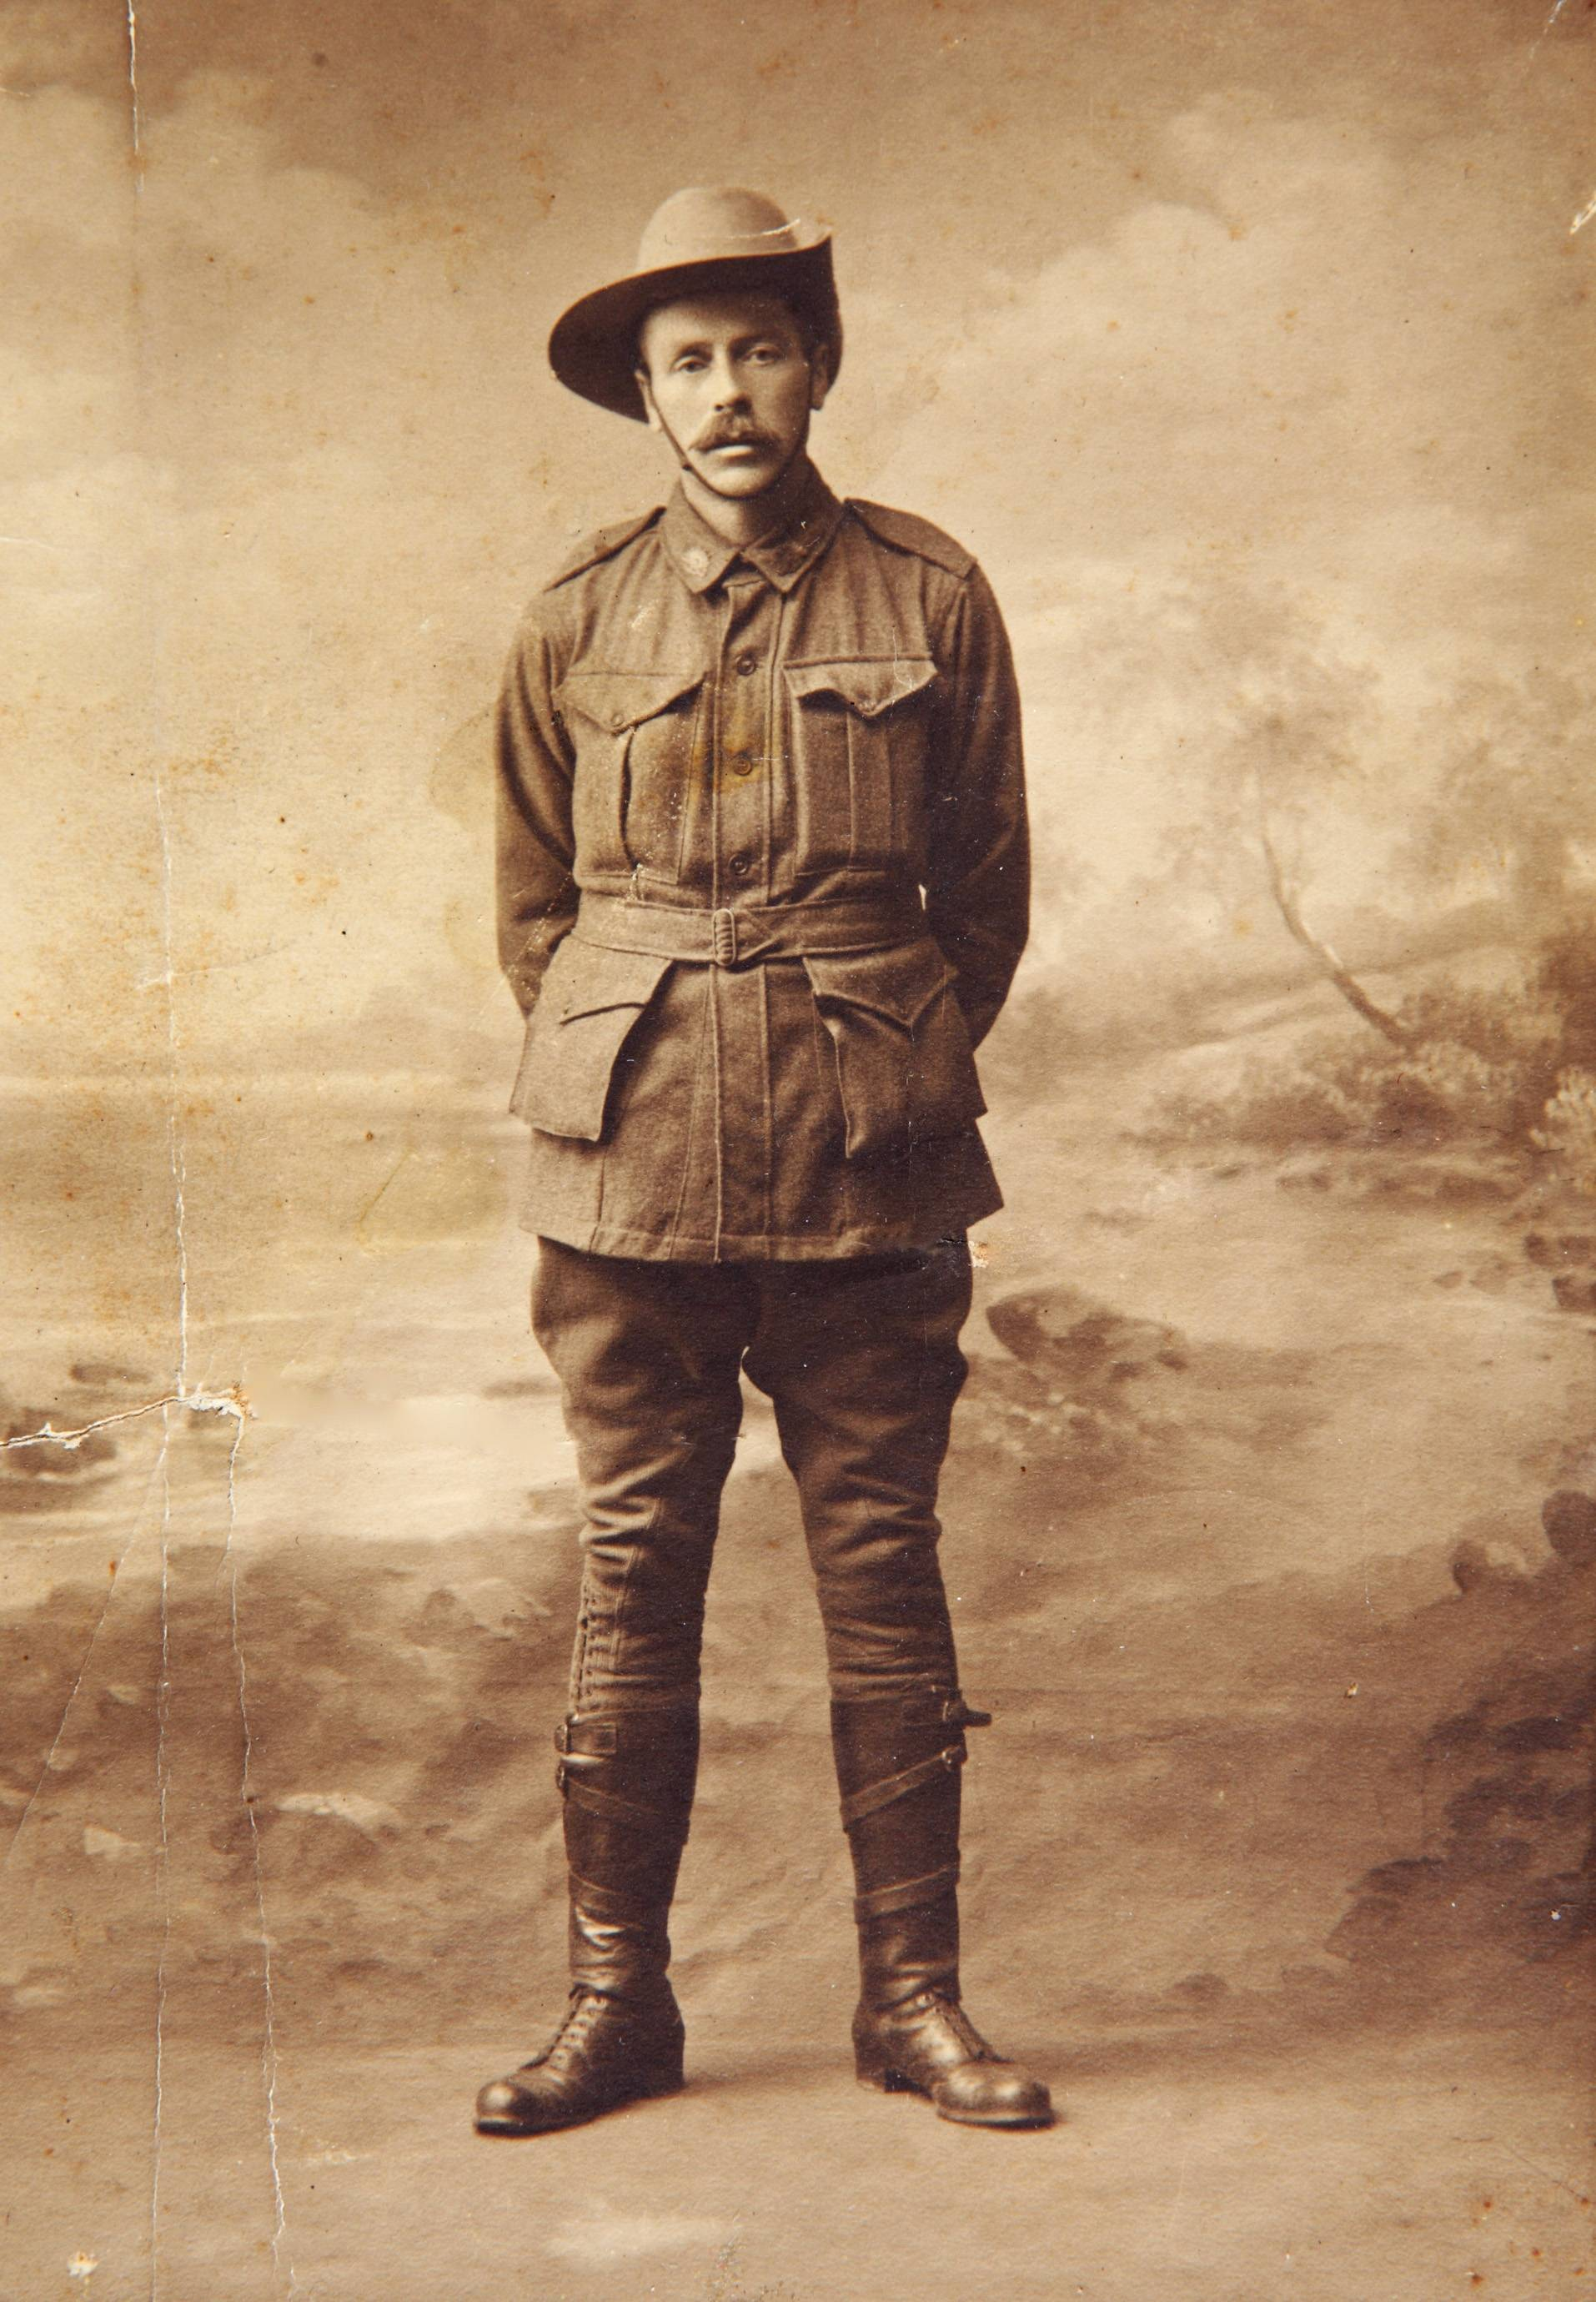 In this undated photo provided by the family, Australian soldier Andrew Bayne poses for a photo before leaving for the Western Front in Brisbane, Australia. Andrew Bayne, along with his brothers, enlisted for service in World War I. Andrew Bayne's journey took him to the battlefields of Bullecourt, Wytschaete, and Ypres before he was killed in action near Messines Ridge, Belgium on Aug. 19, 1917.